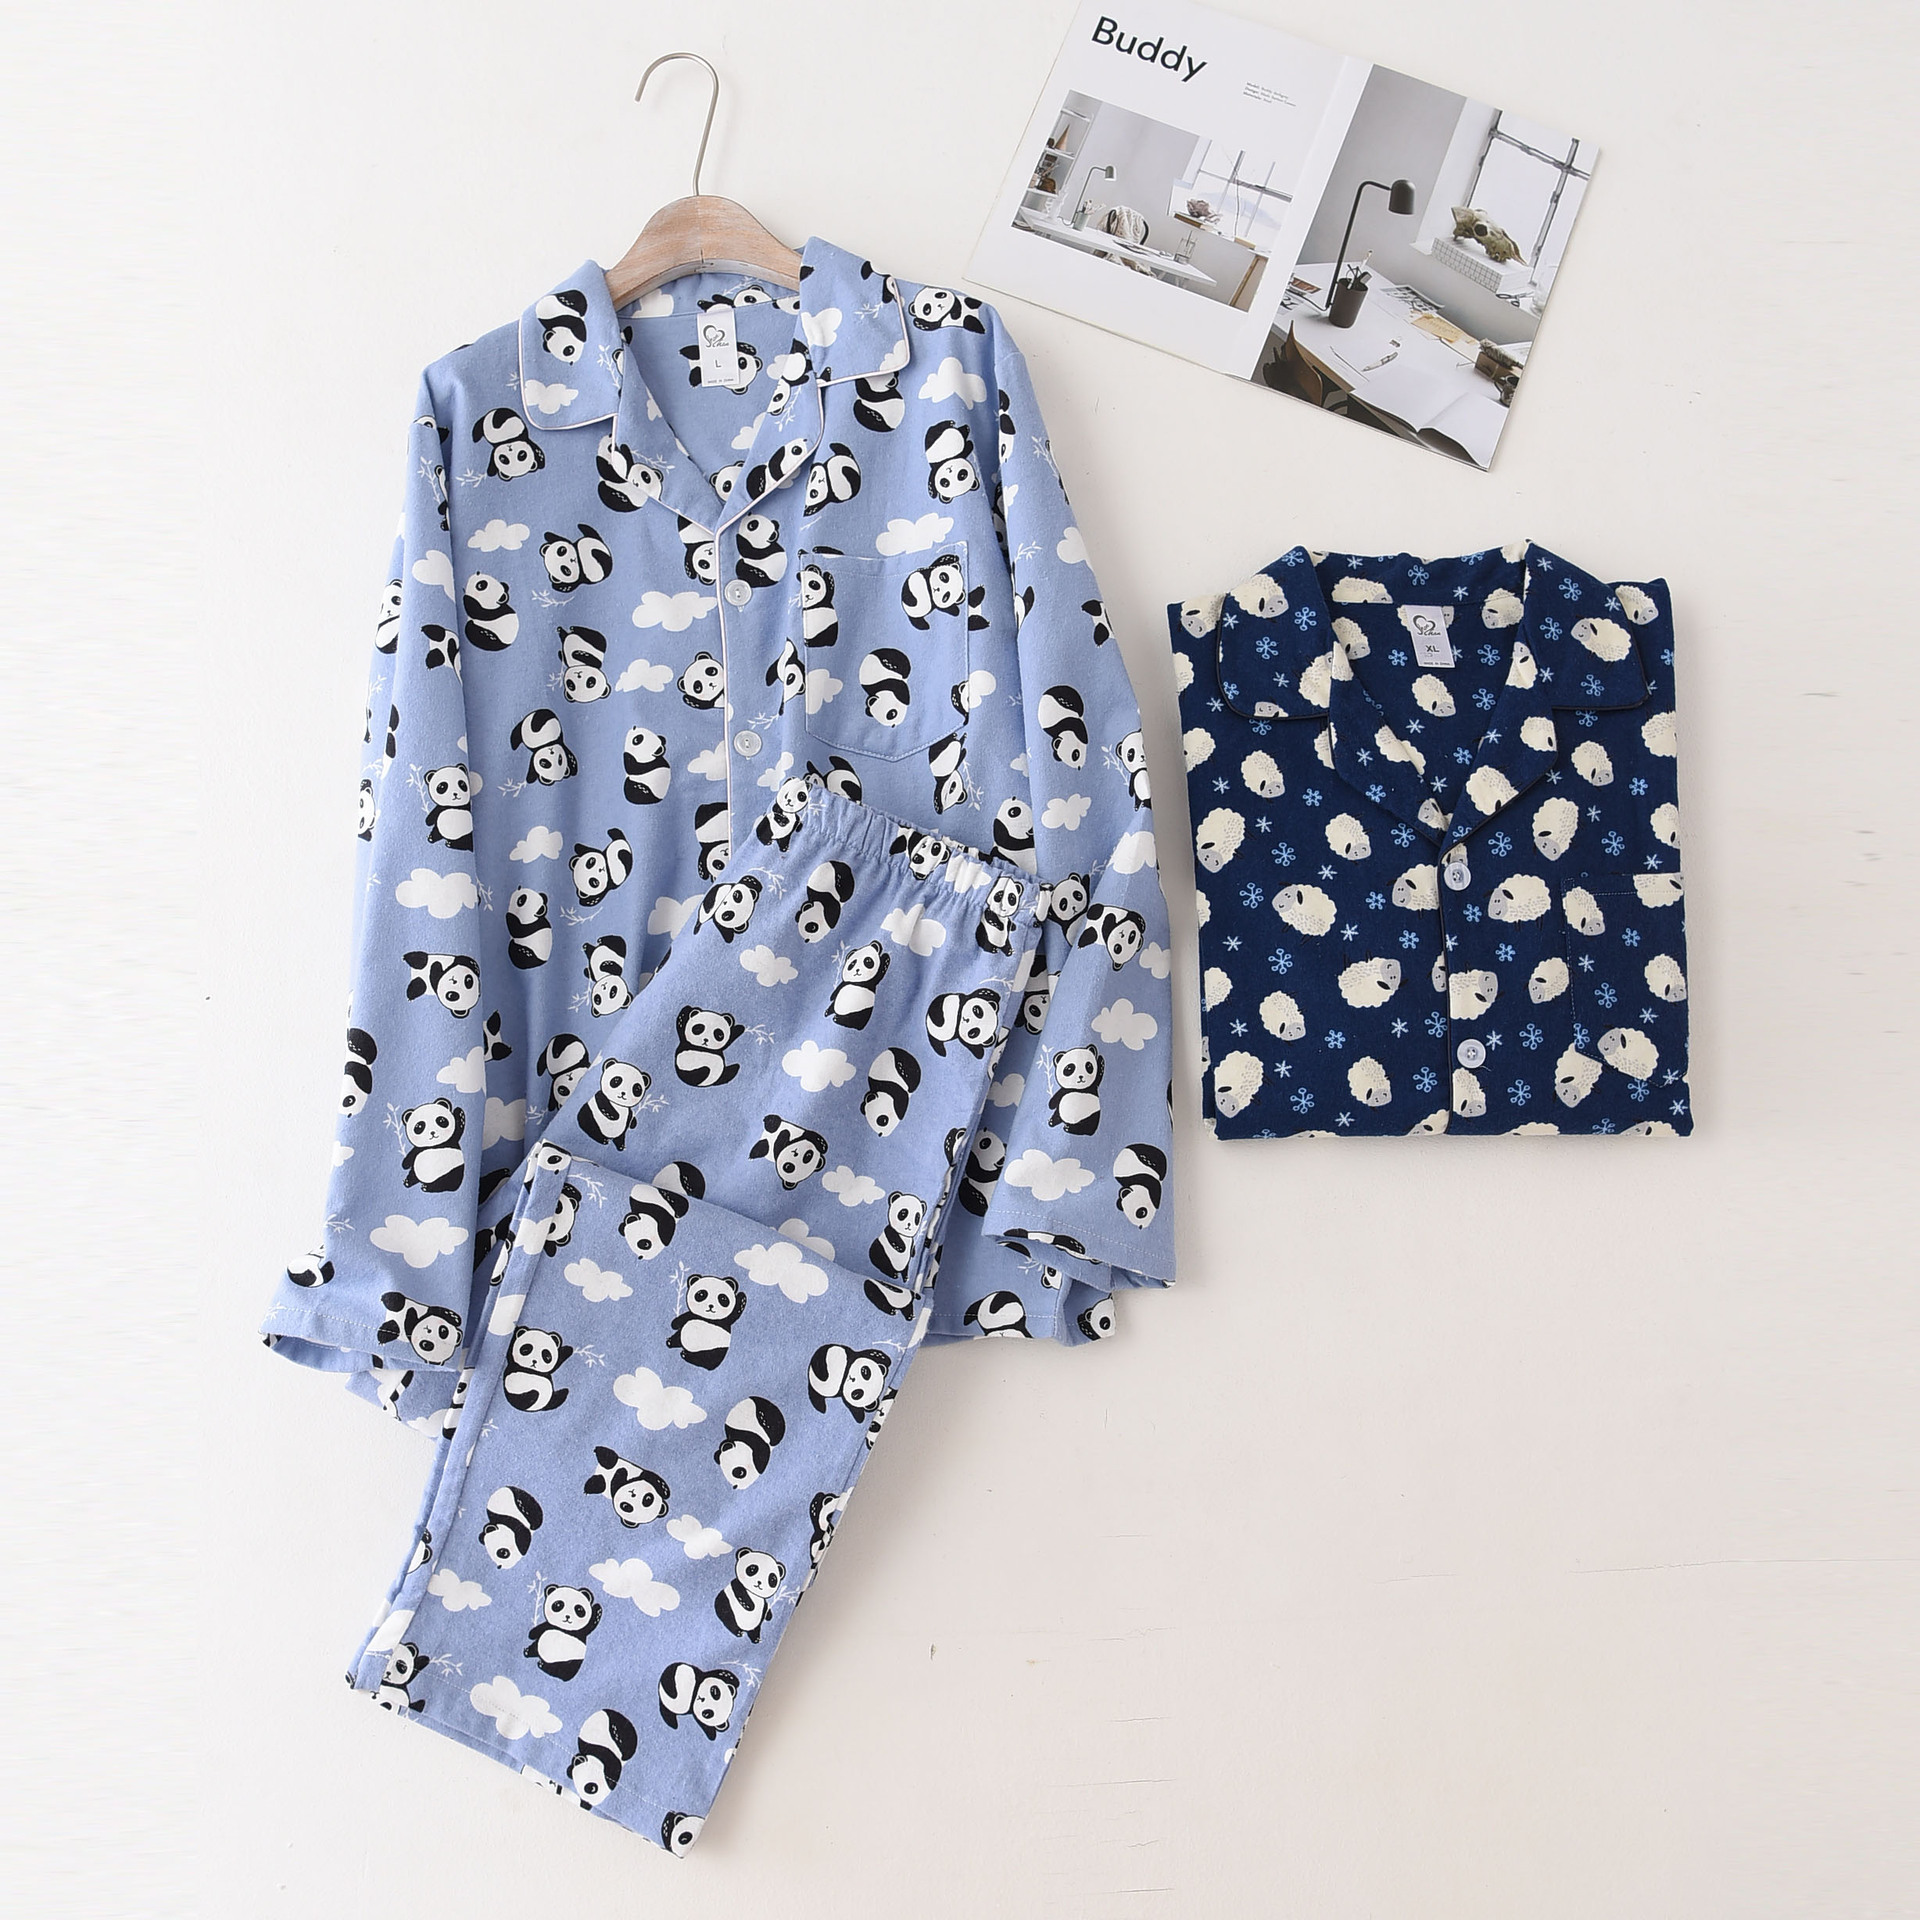 Mens Pajamas Cotton Long Sleeves Men Sleepwear Winter Lapel Cardigan Cartoon Sleeping Suits 100% Cotton Plus Size Mansleepwear